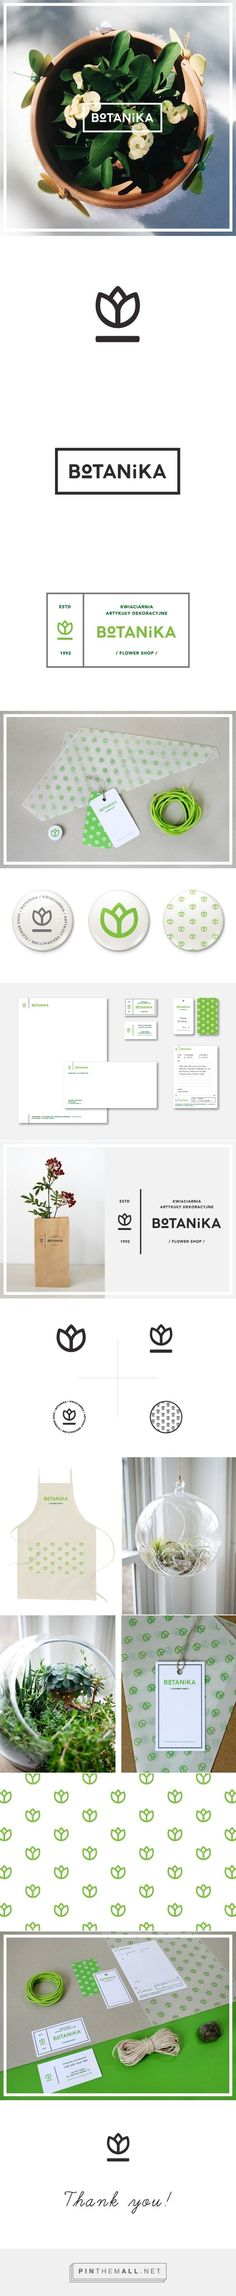 Fivestar Branding Agency – Business Branding and Web Design for Small Business Owners Graphic Design Branding, Inspiration, Shop Design, Branding Design Logo, Graphic Design Inspiration, Logo Branding Identity, Visual Design, Brand Identity Design, Flower Logo